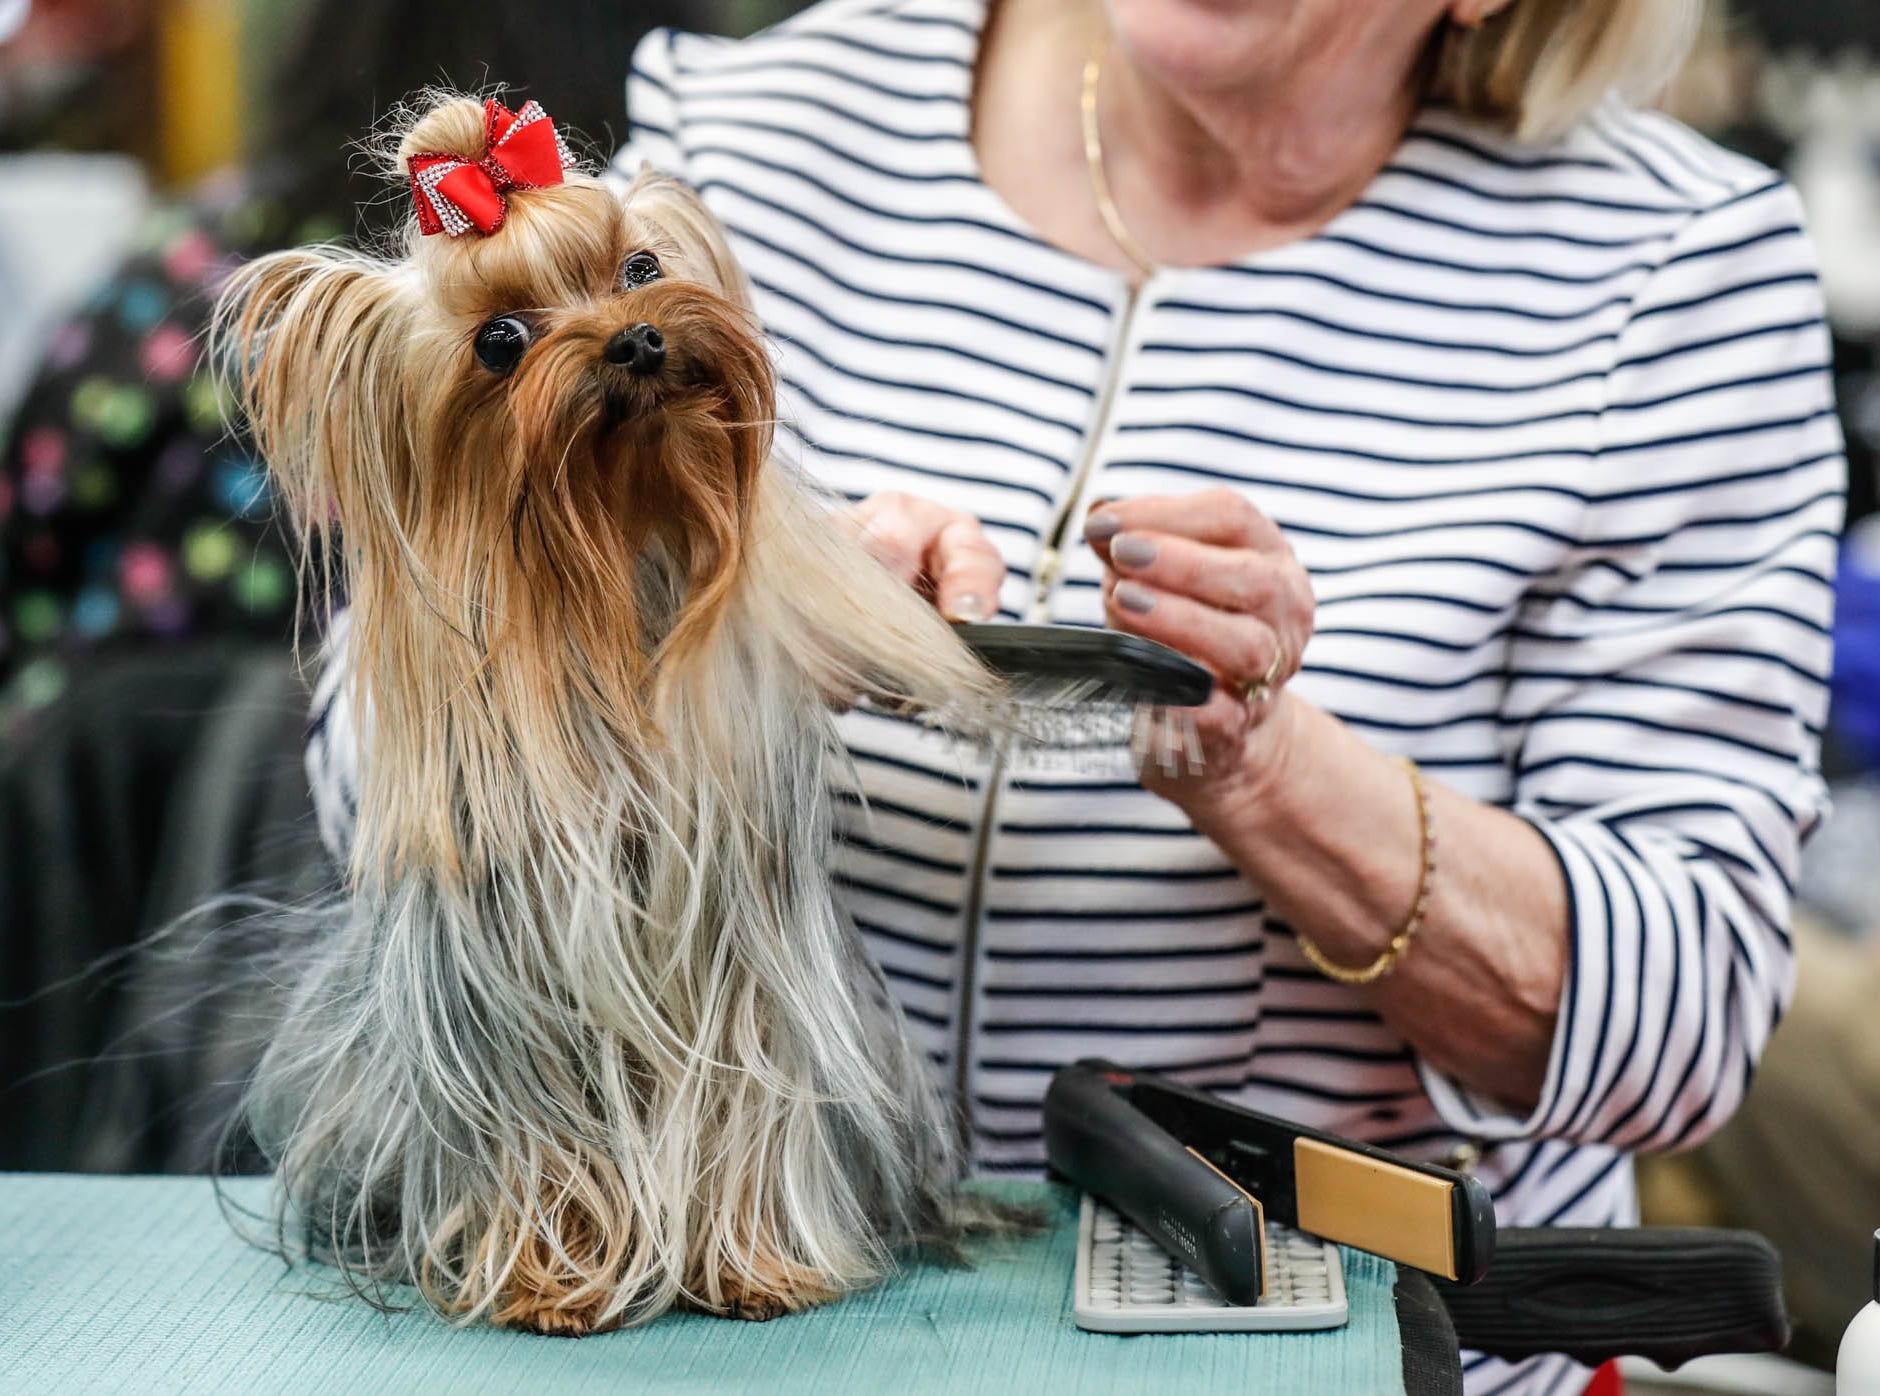 Pam Wengorovius, center, grooms her dog Freya, a Yorkshire terrier, during the Indy Winter Classic All Breed Dog Show held at the Indiana State Fairgrounds on Sunday, Feb. 10, 2019.